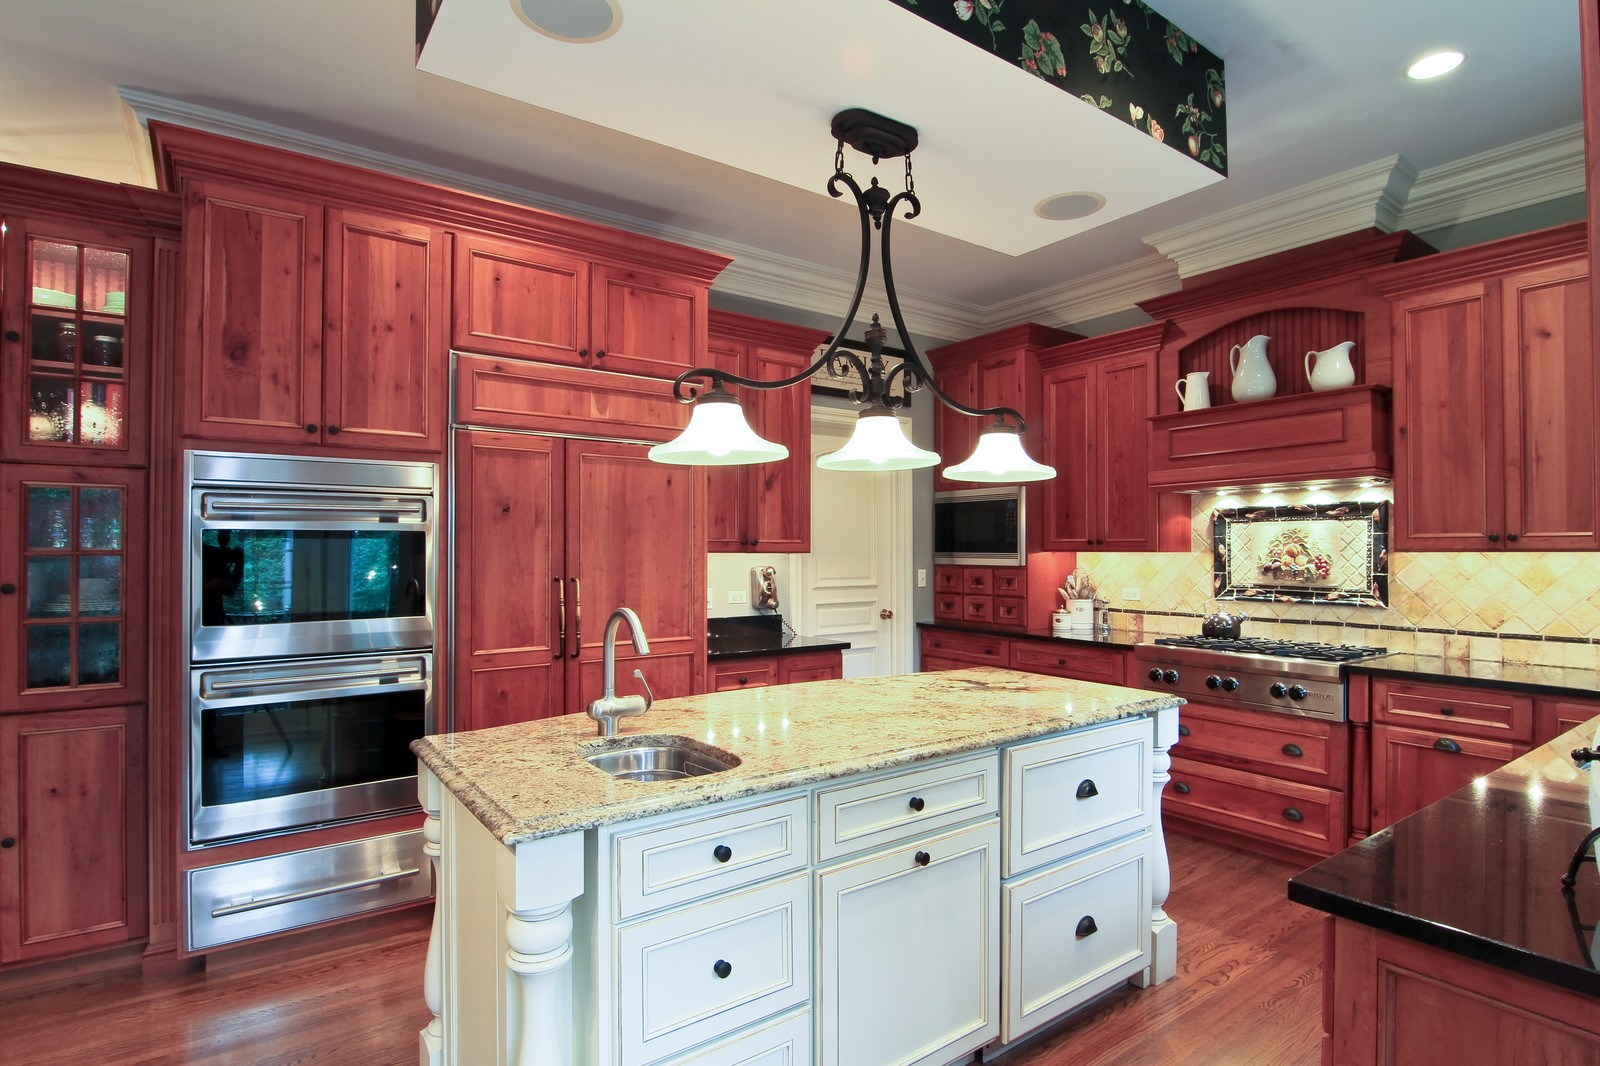 Real Estate Photography - 127 Tuttle, Claredon Hills, IL, 60514 - Kitchen